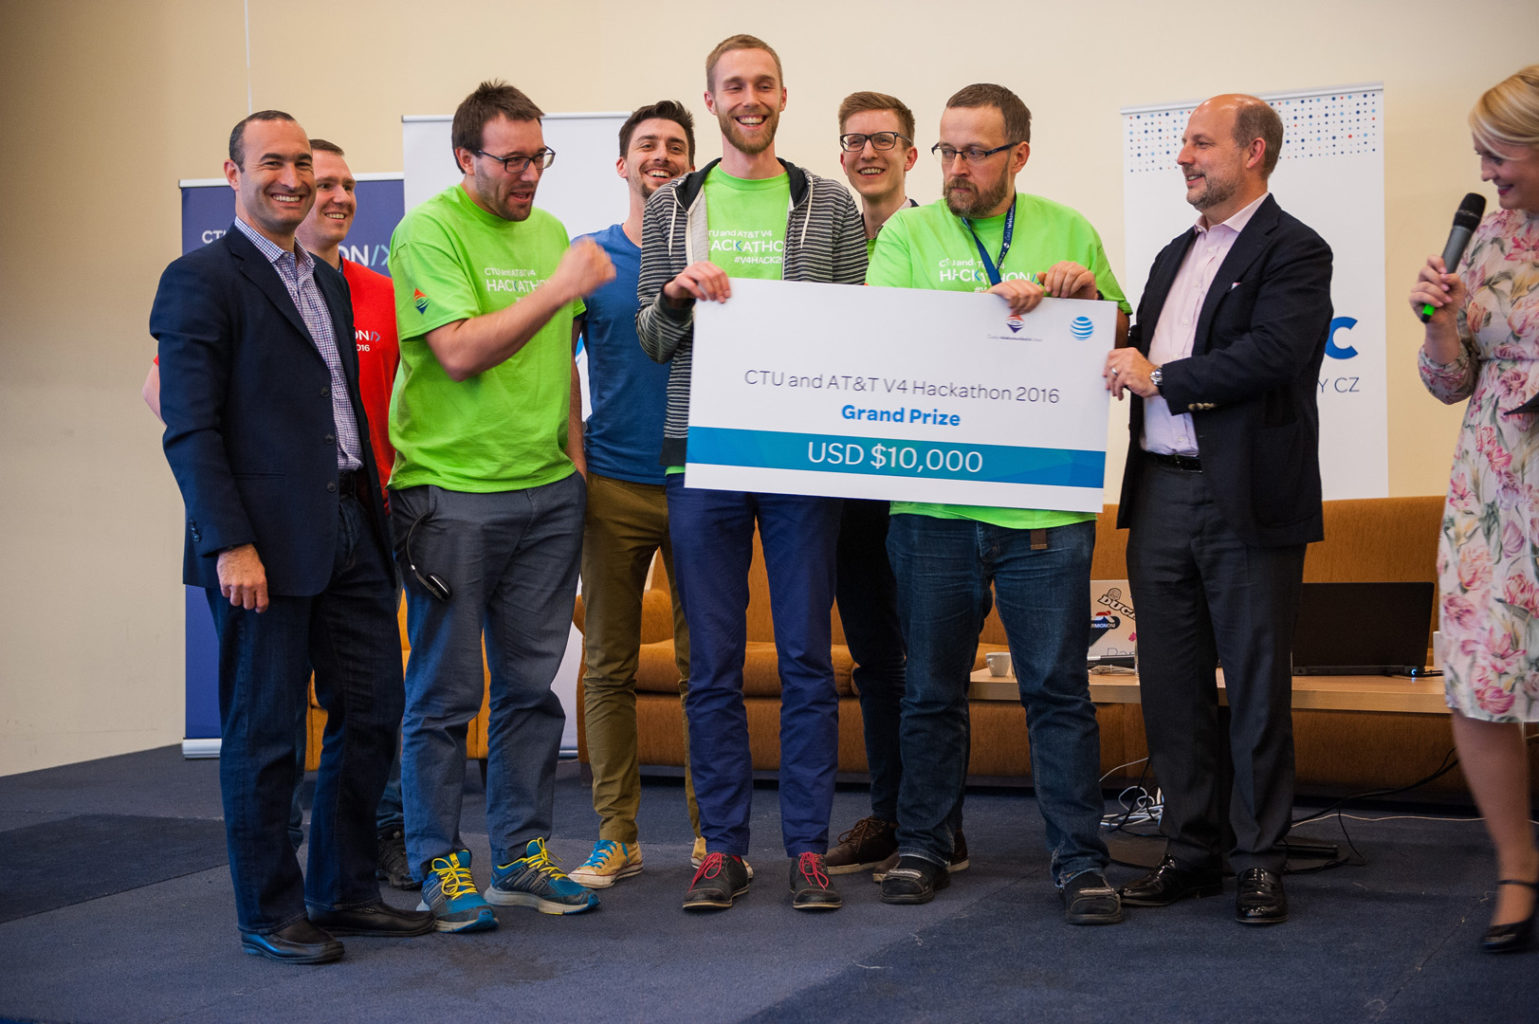 V4 Hackathon Prague 2016 Winners 1st place